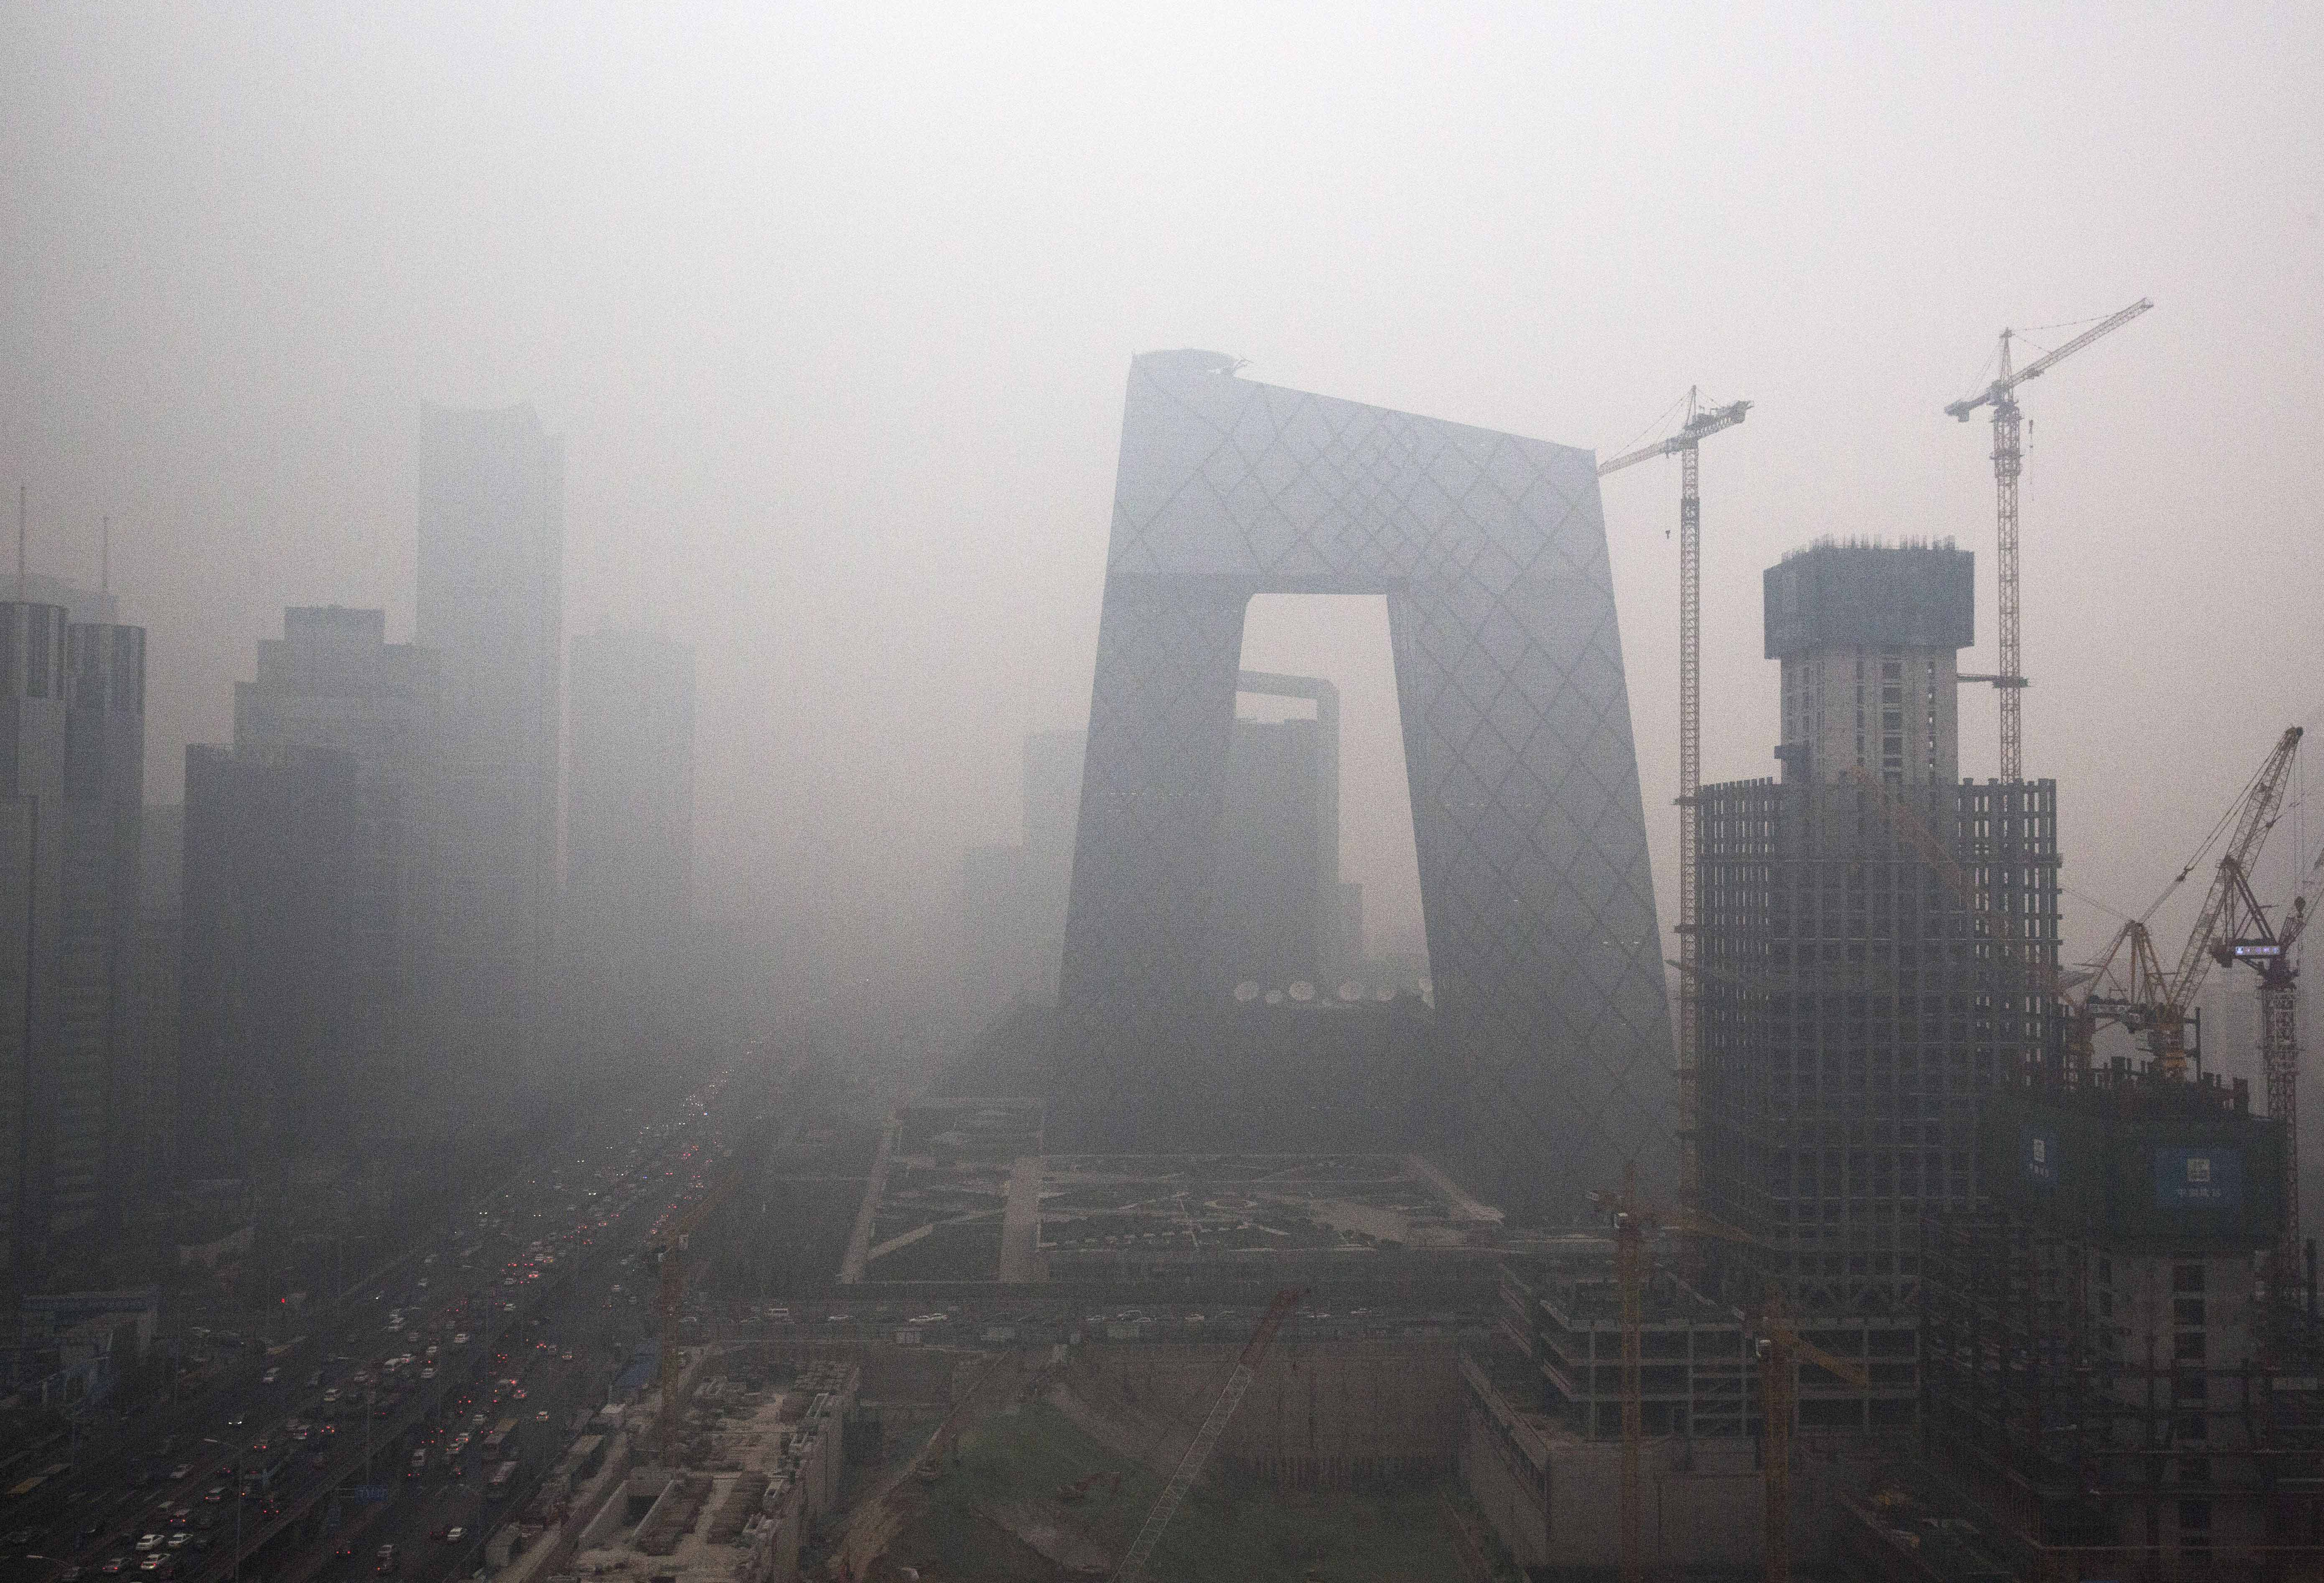 """BEIJING, CHINA - DECEMBER 08: The Central Business District is seen in heavy smog on December 8, 2015 in Beijing, China. The Beijing government issued a """"red alert"""" for the first time since new standards were introduced earlier this year as the city and many parts of northern China were shrouded in heavy pollution. Levels of PM 2.5, considered the most hazardous, crossed 400 units in Beijing, lower than last week, but still nearly 20 times the acceptable standard set by the World Health Organization. The governments of more than 190 countries are meeting in Paris to set targets on reducing carbon emissions in an attempt to forge a new global agreement on climate change. (Photo by Kevin Frayer/Getty Images)"""